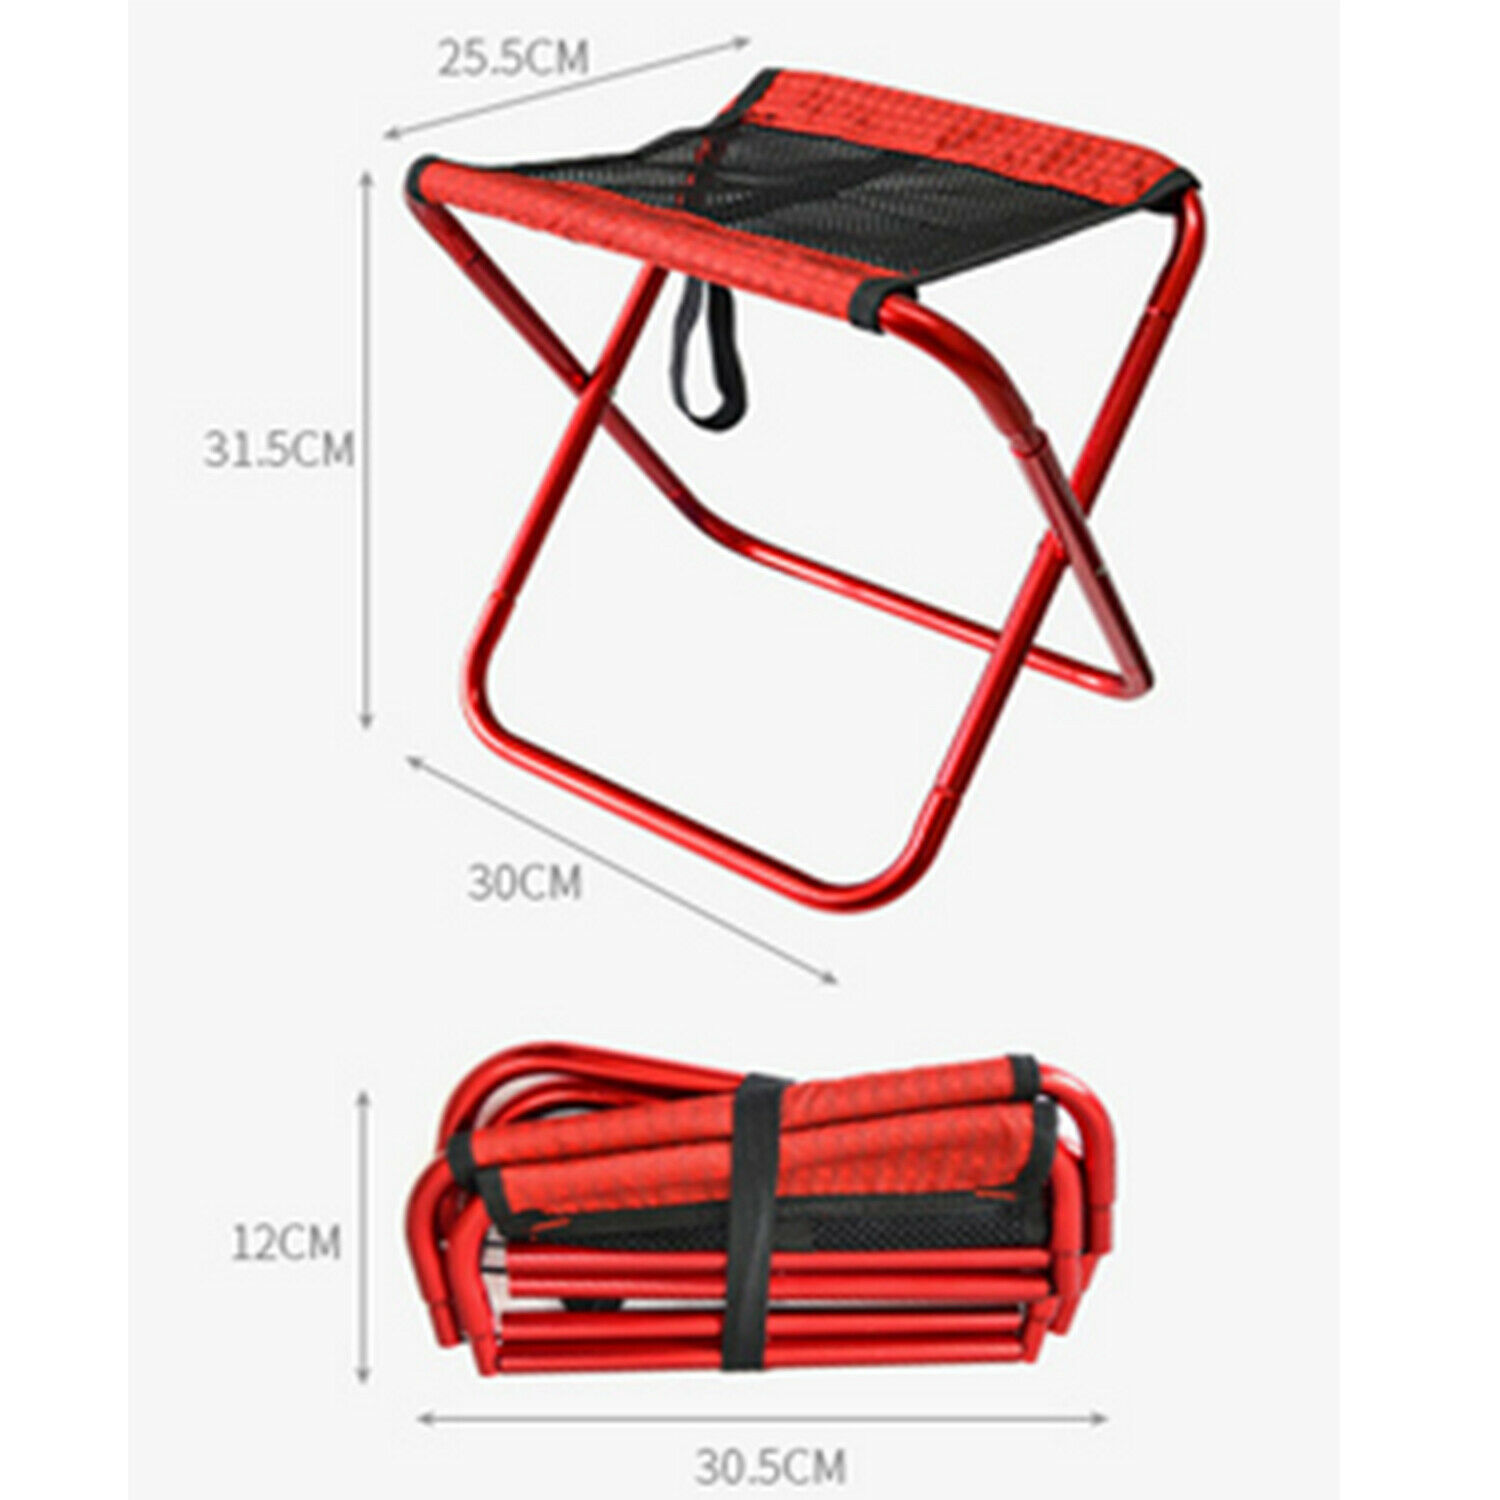 Portable Folding Step Caravan Camping Stool  Accessories Ladder Stool Camper